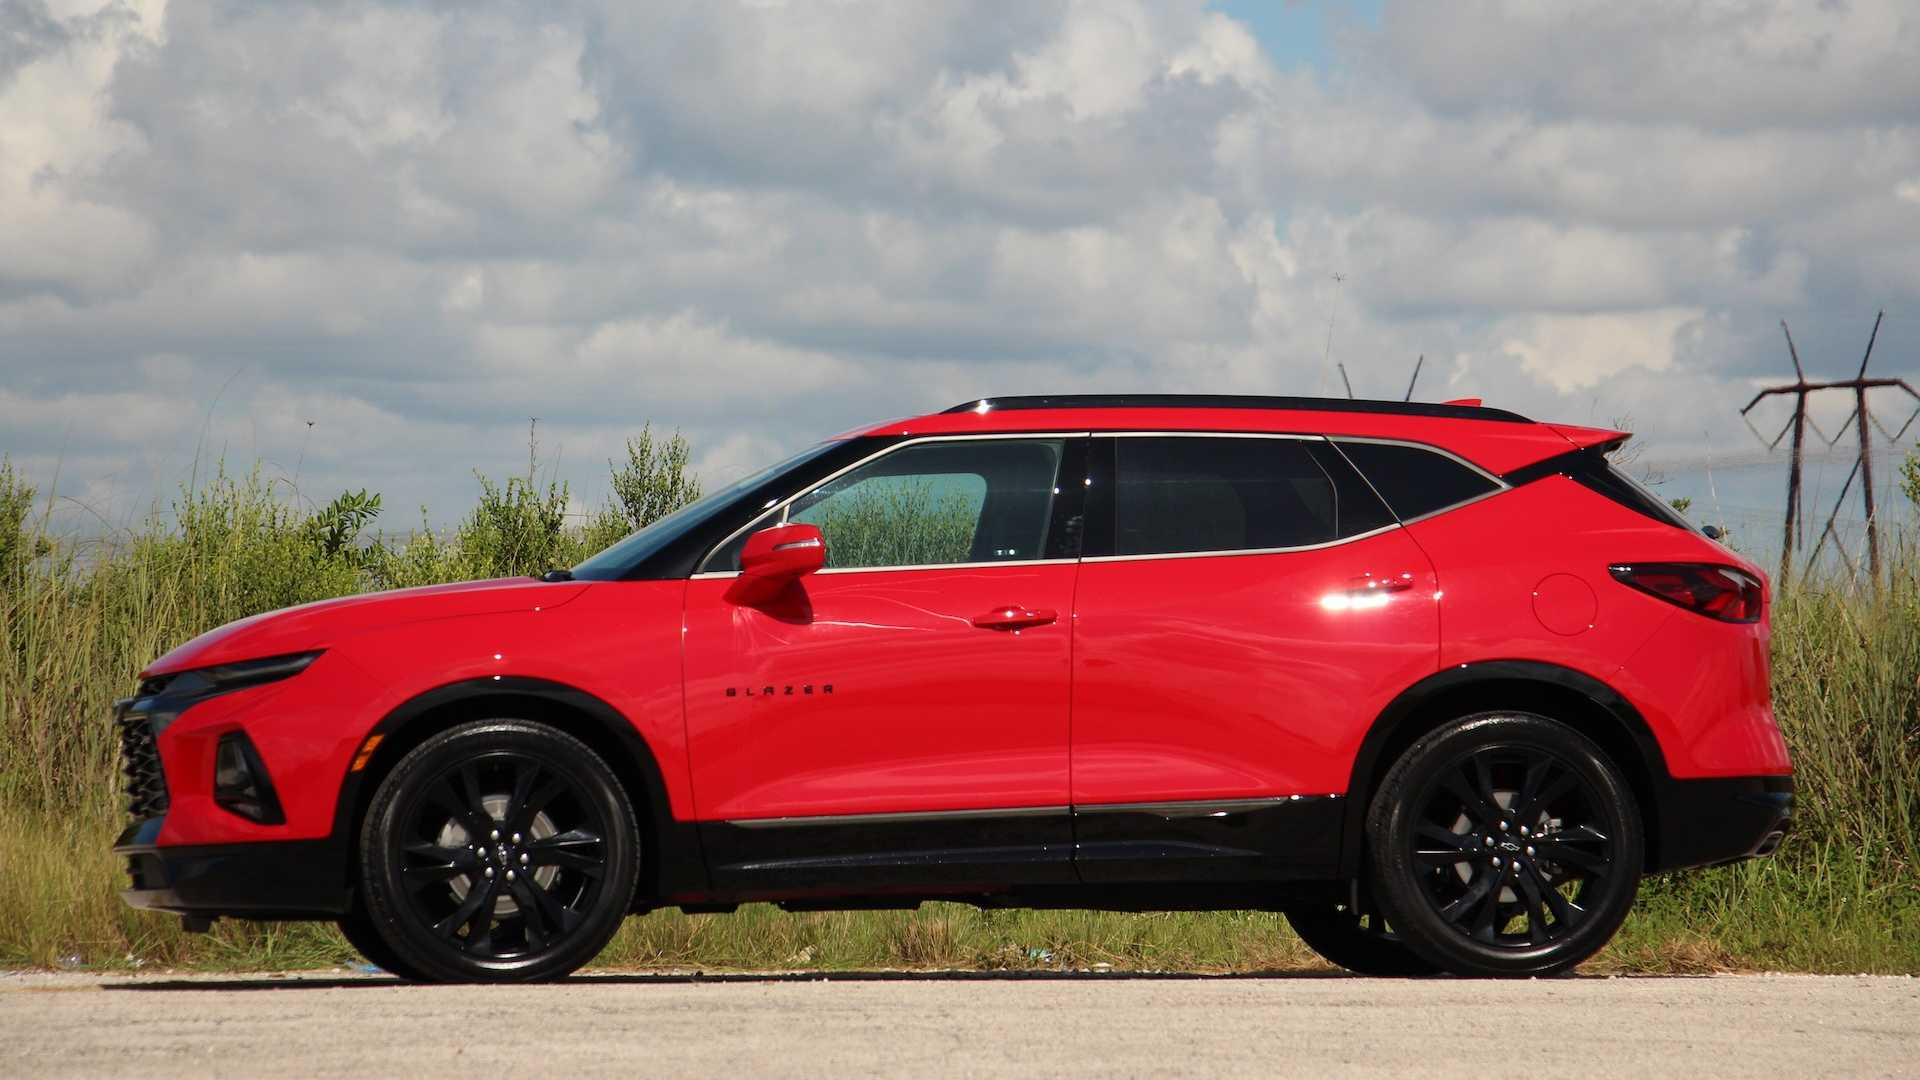 2020 Chevy Blazer Specs and Review